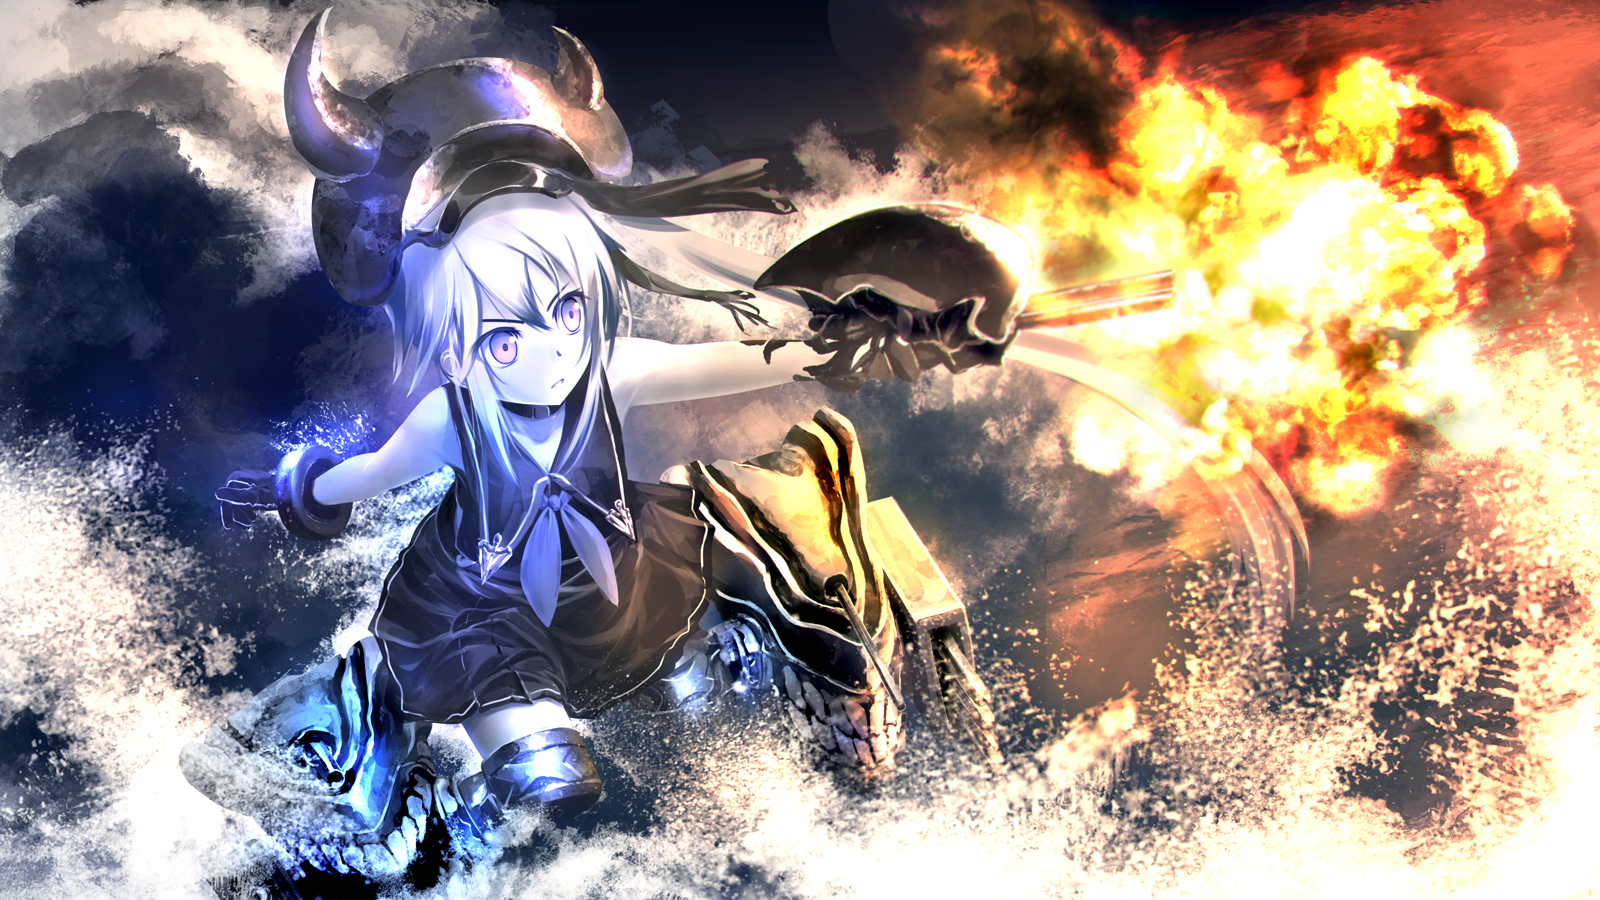 29 Fresh Kantai Collection Backgrounds SDA74 4K Ultra HD Wallpapers 1600x900